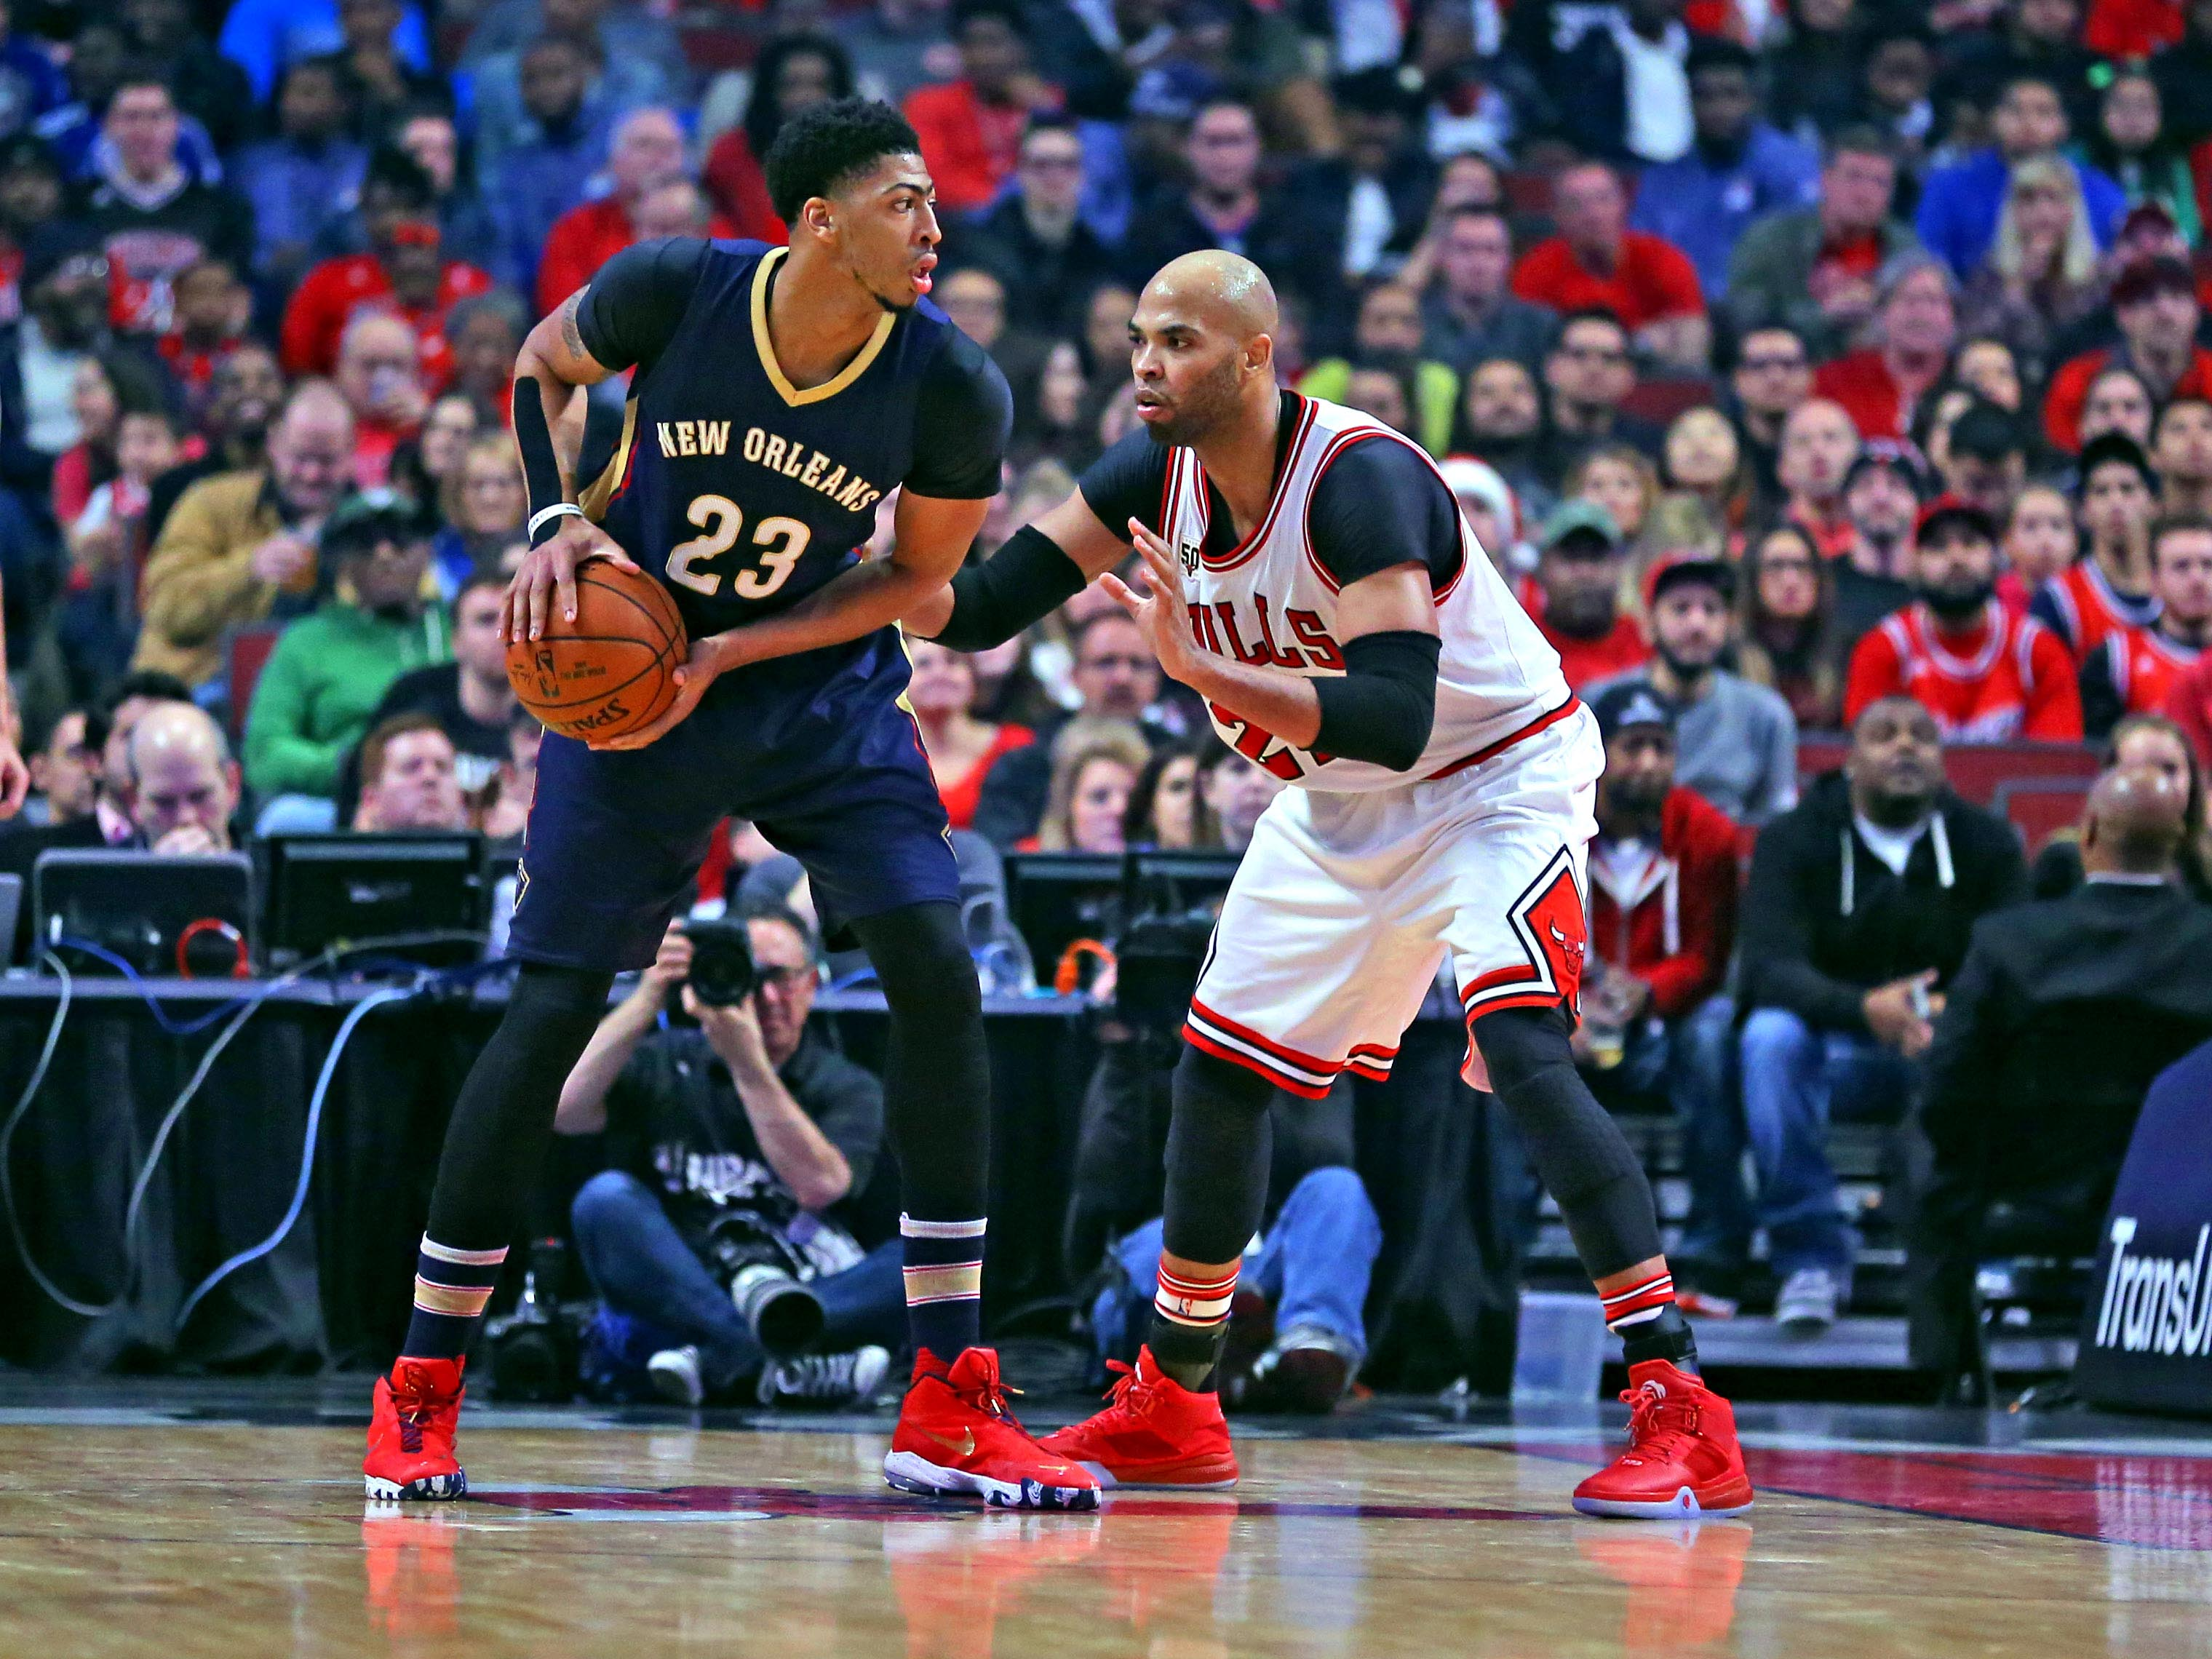 8993331-nba-new-orleans-pelicans-at-chicago-bulls